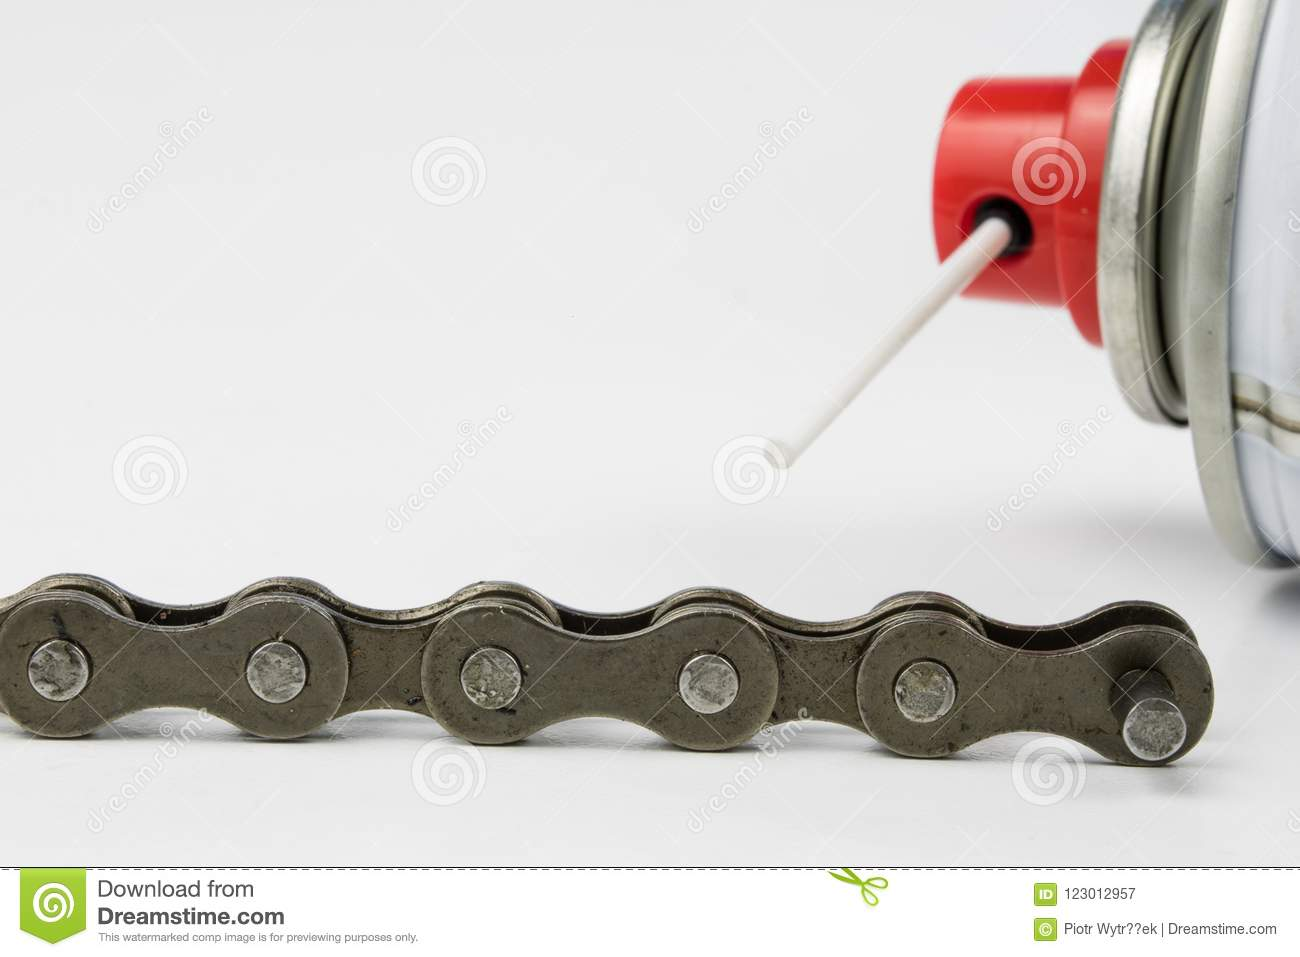 Lubricating the bicycle chain with liquid lubricant. Periodic se